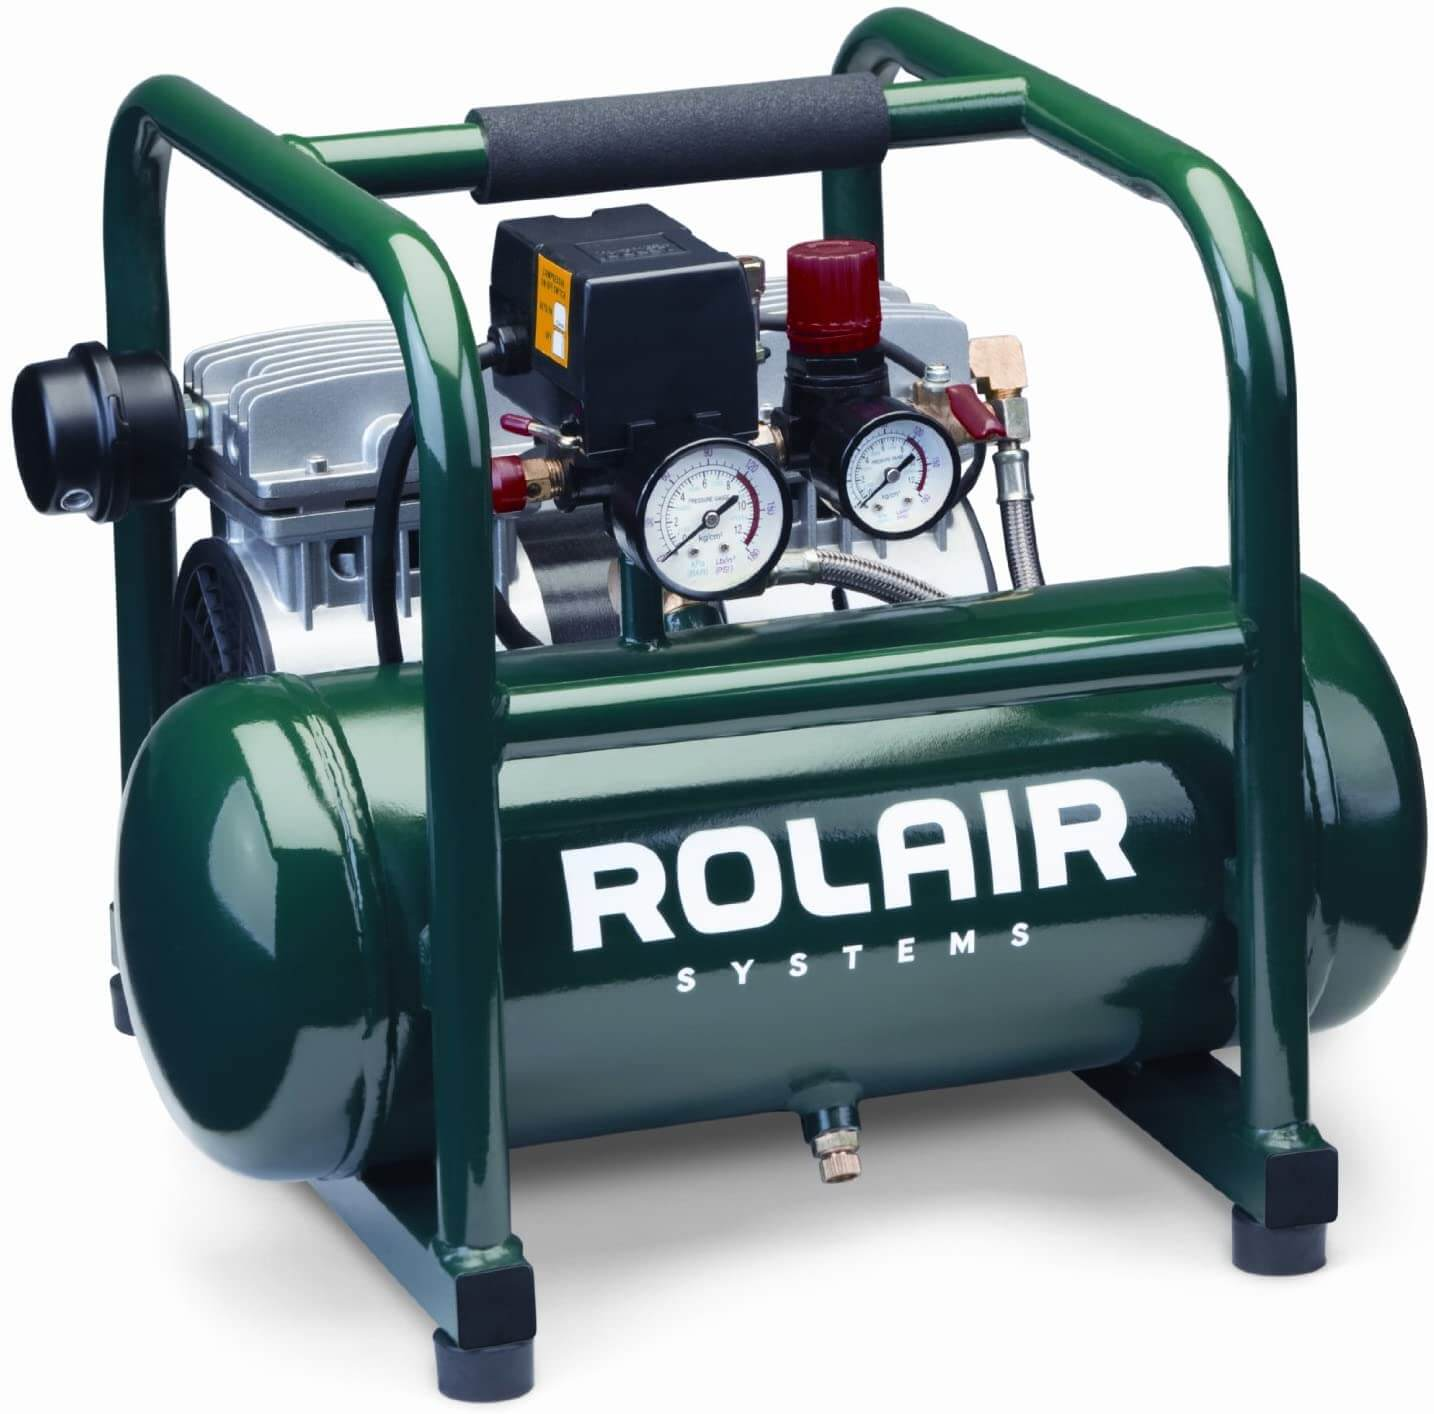 Rolair JC10 HP Air Compressor For HVLP